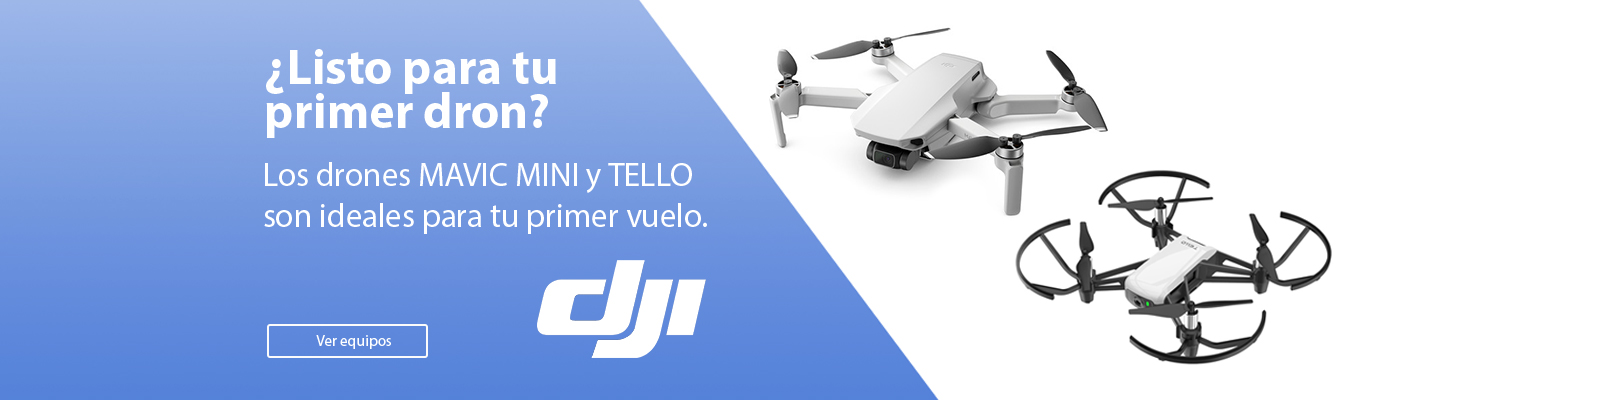 dron mavic mini y dron tello DJI